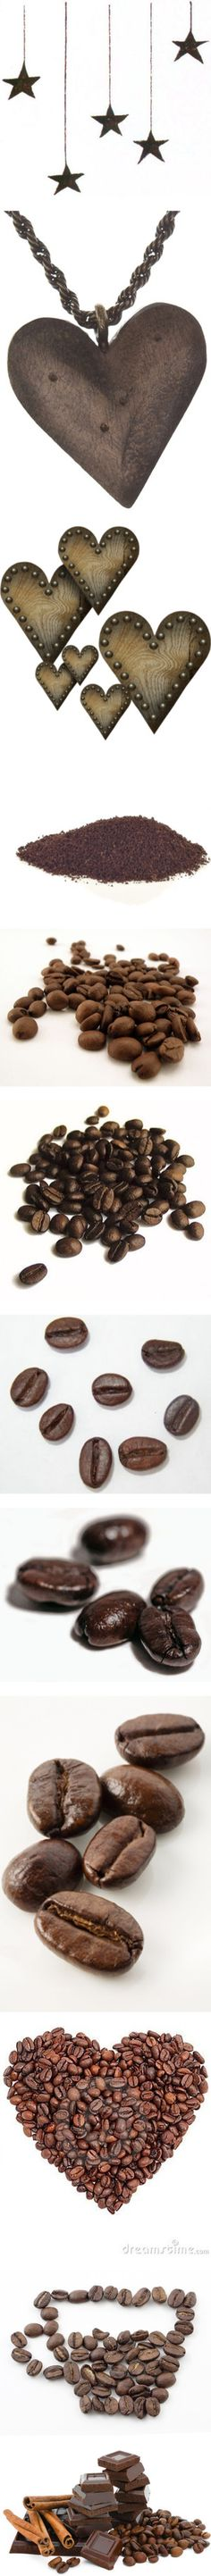 """Coffee beans"" by rorie-burke ❤ liked on Polyvore"